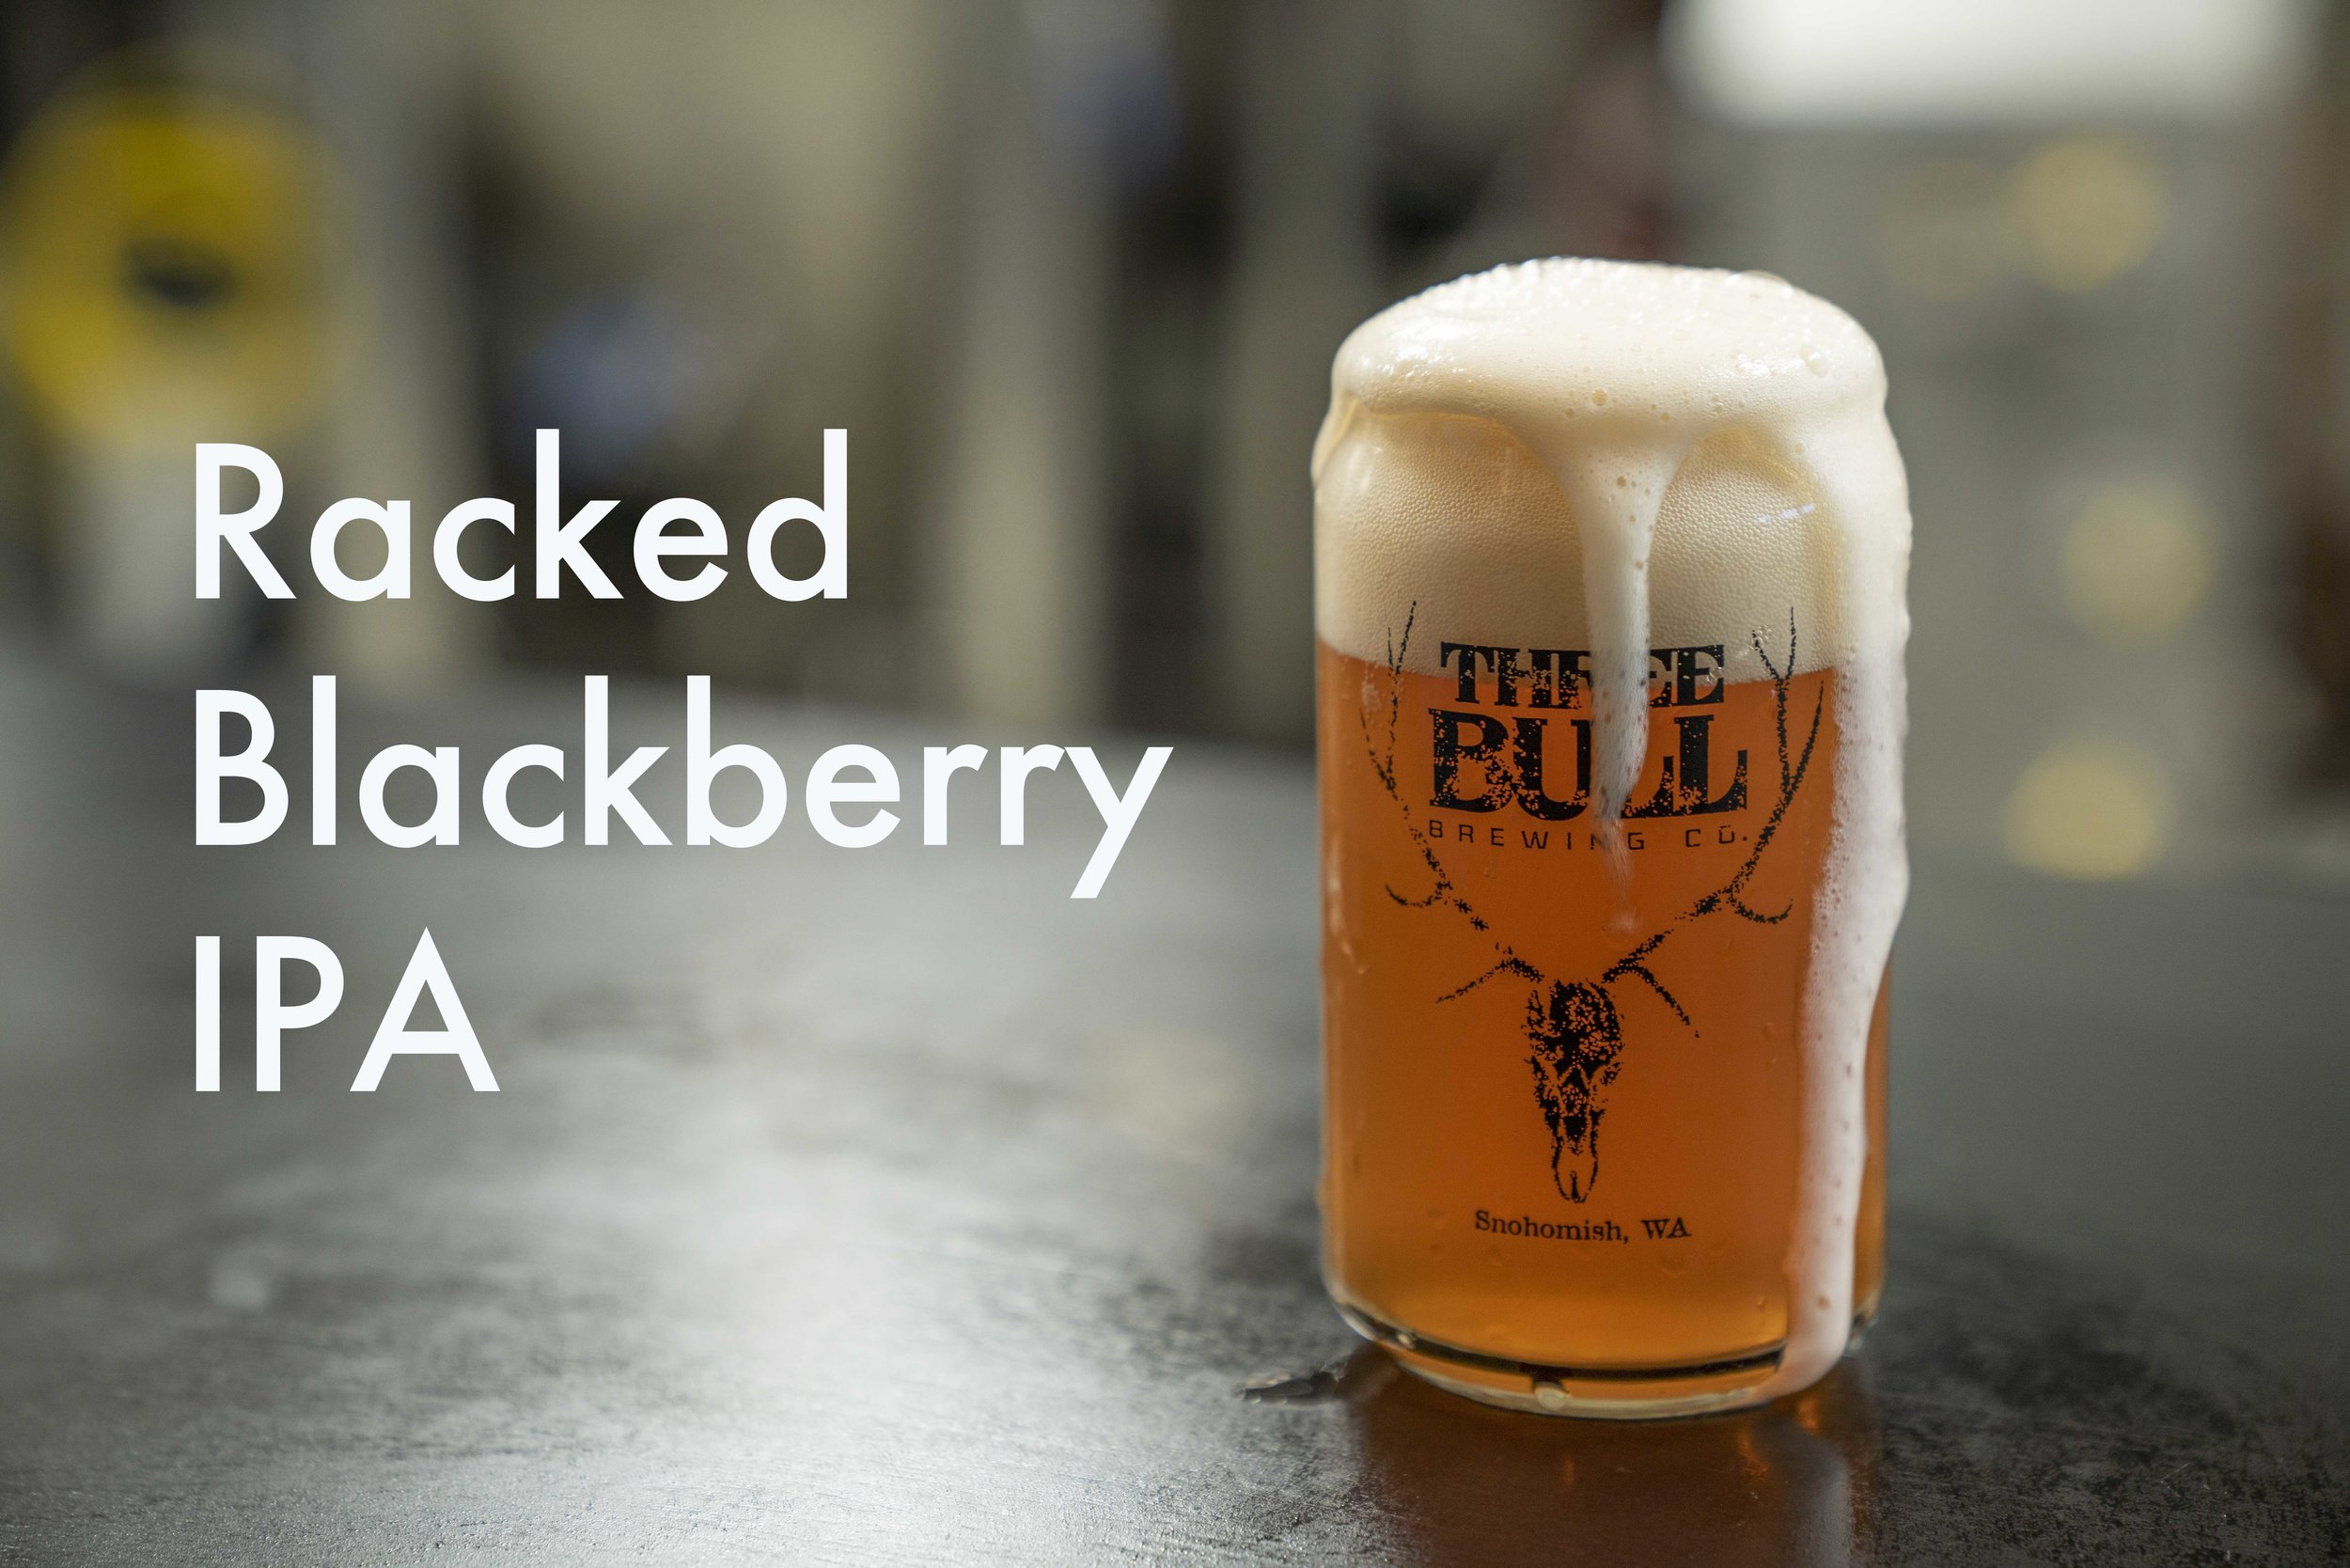 Racked Blackberry IPA with TItle.jpg